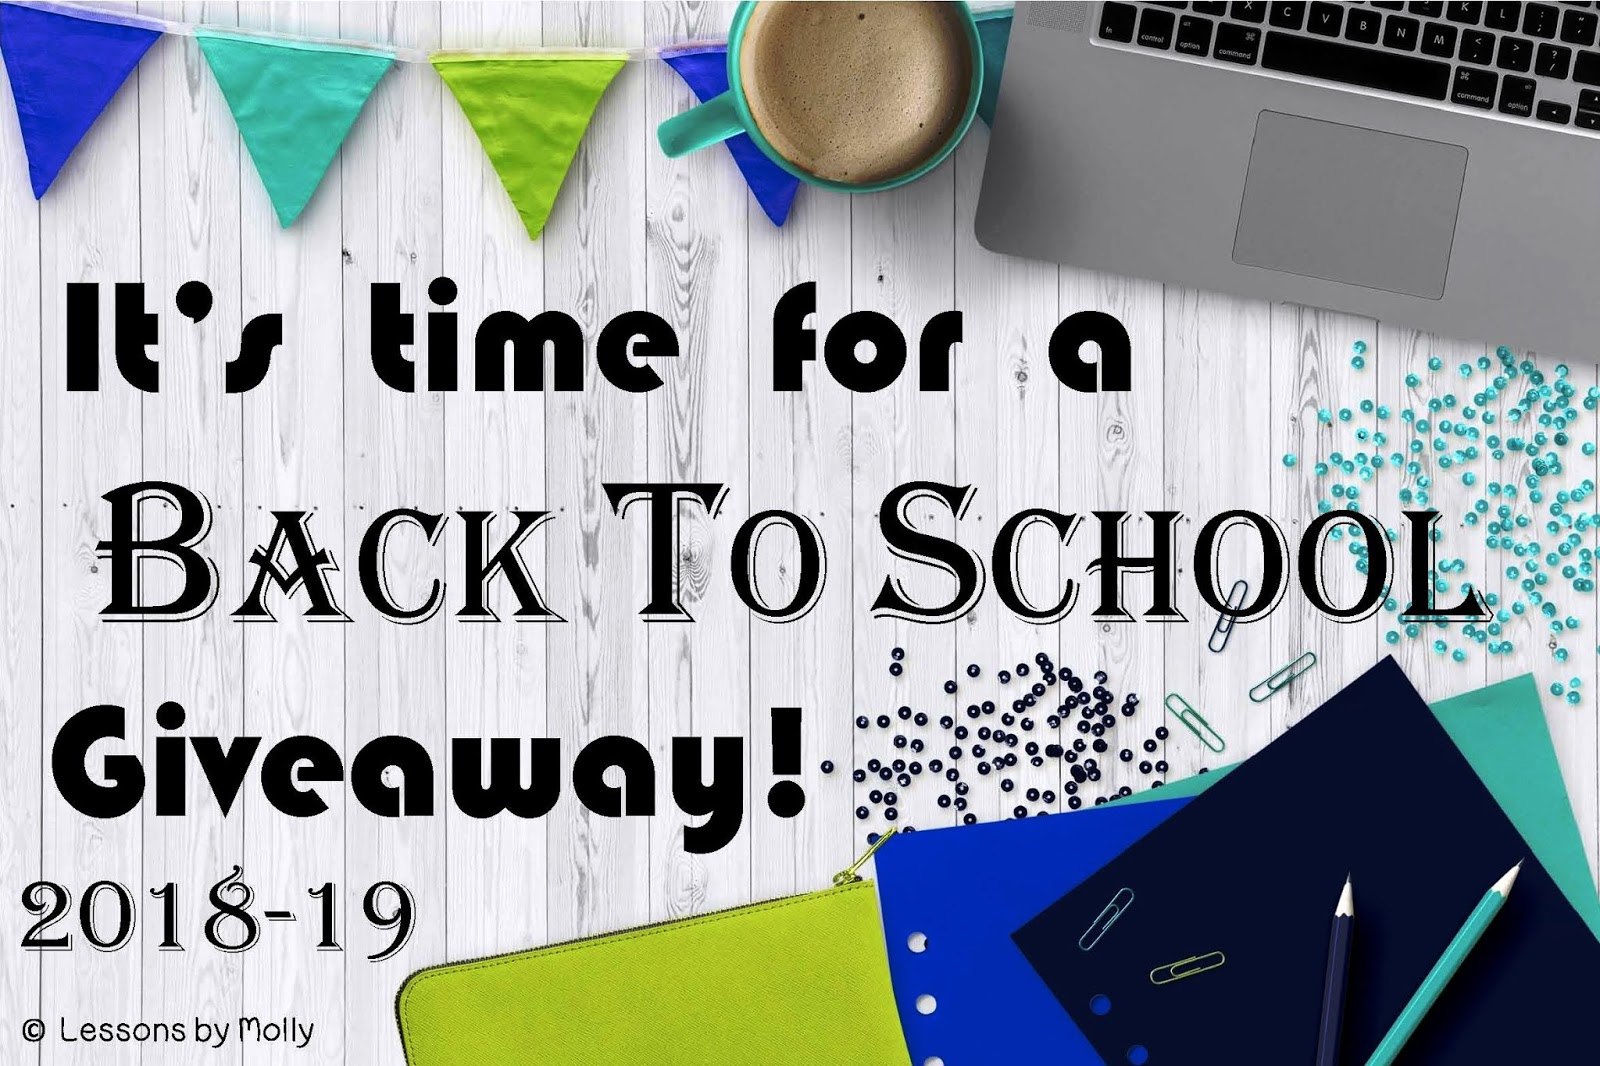 Ti back to school giveaways